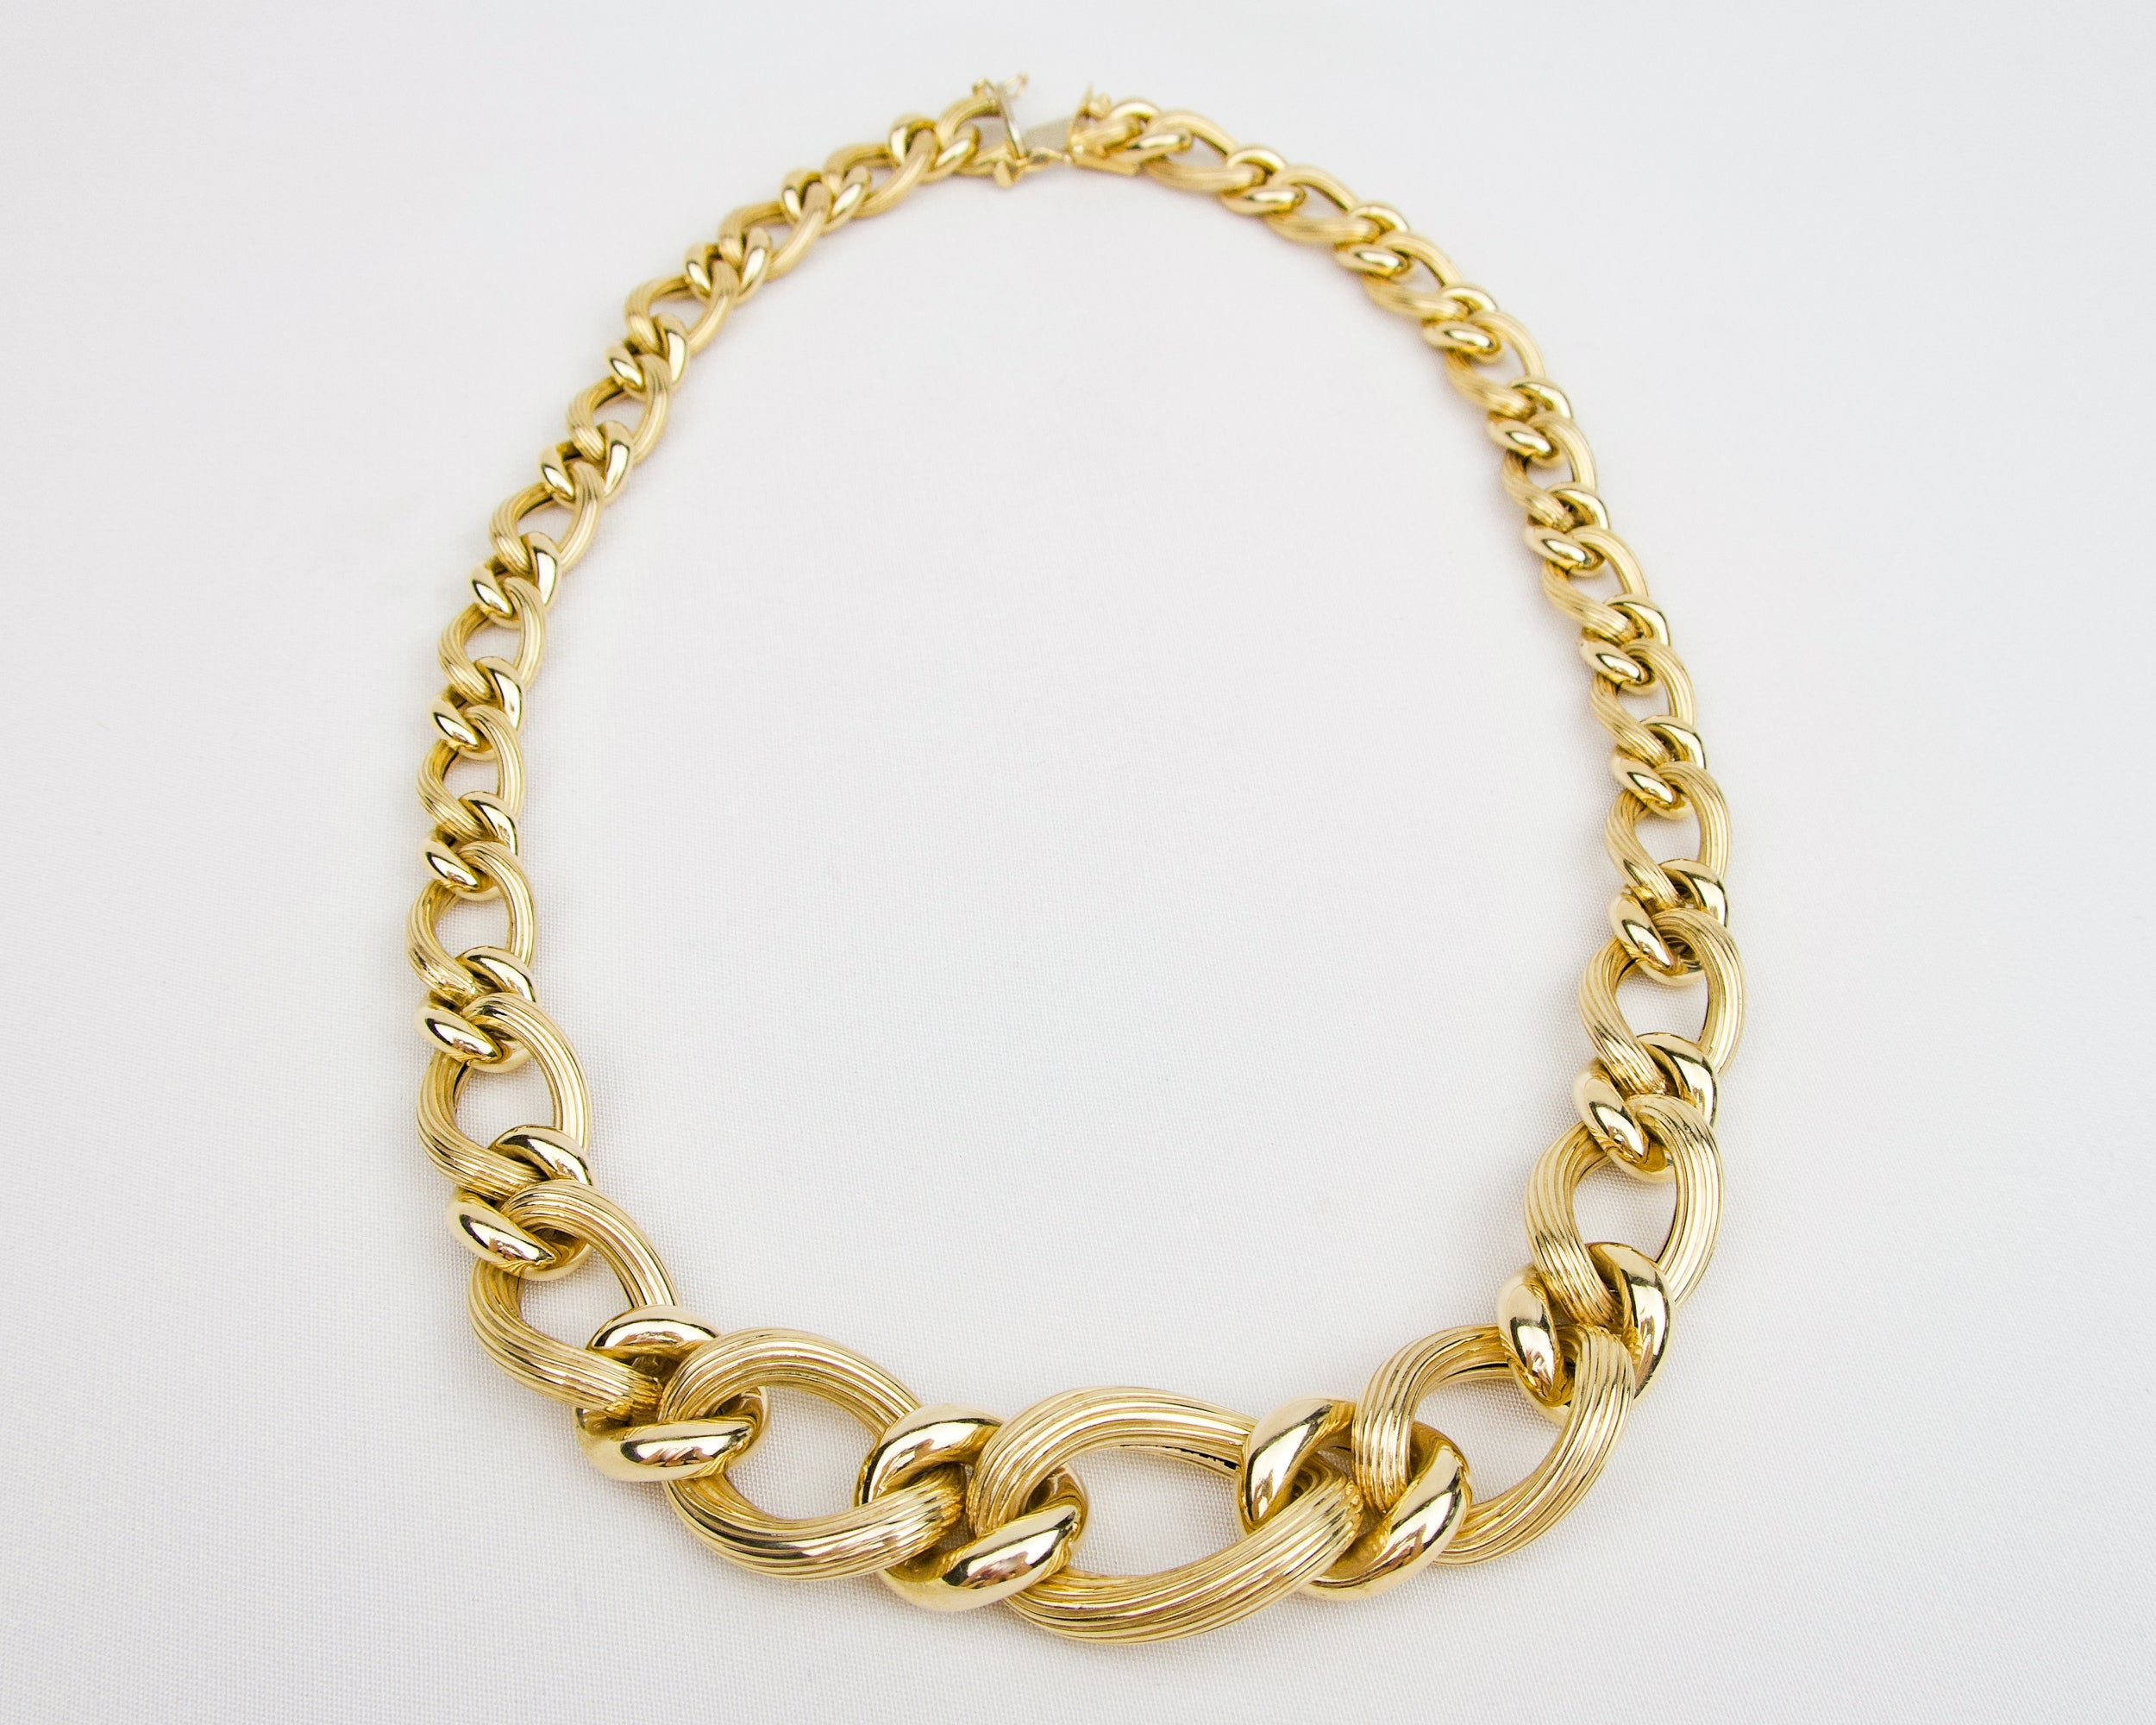 Vintage Gold Link Chain Necklace